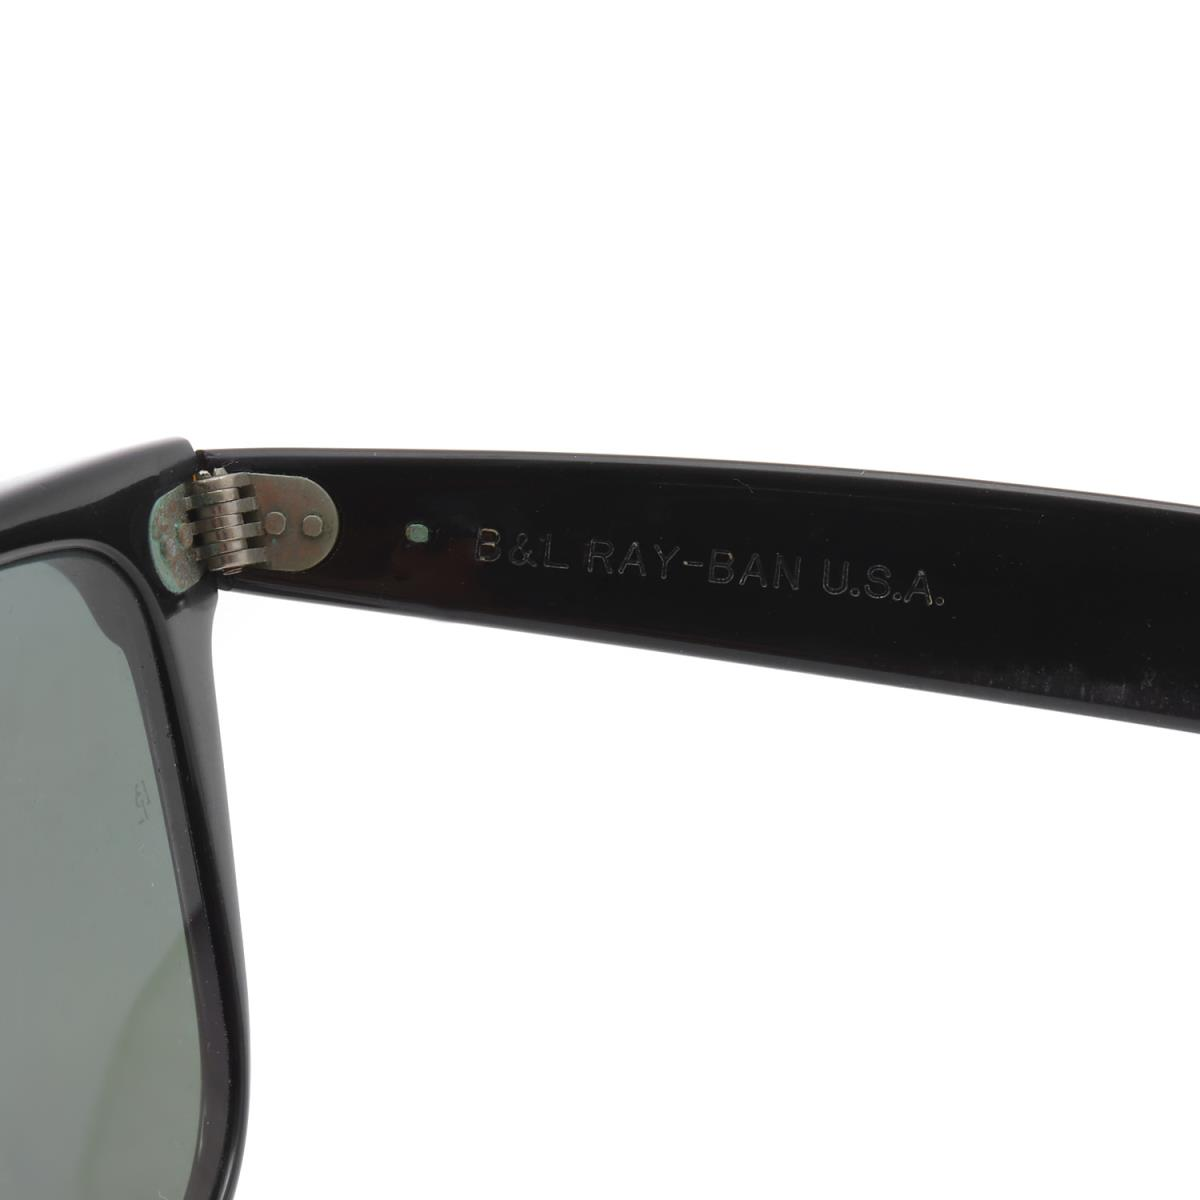 86470d6e0b BEEGLE by Boo-Bee: Ray Ban (Ray-Ban) 90' s way Farrar 2 sunglasses ...